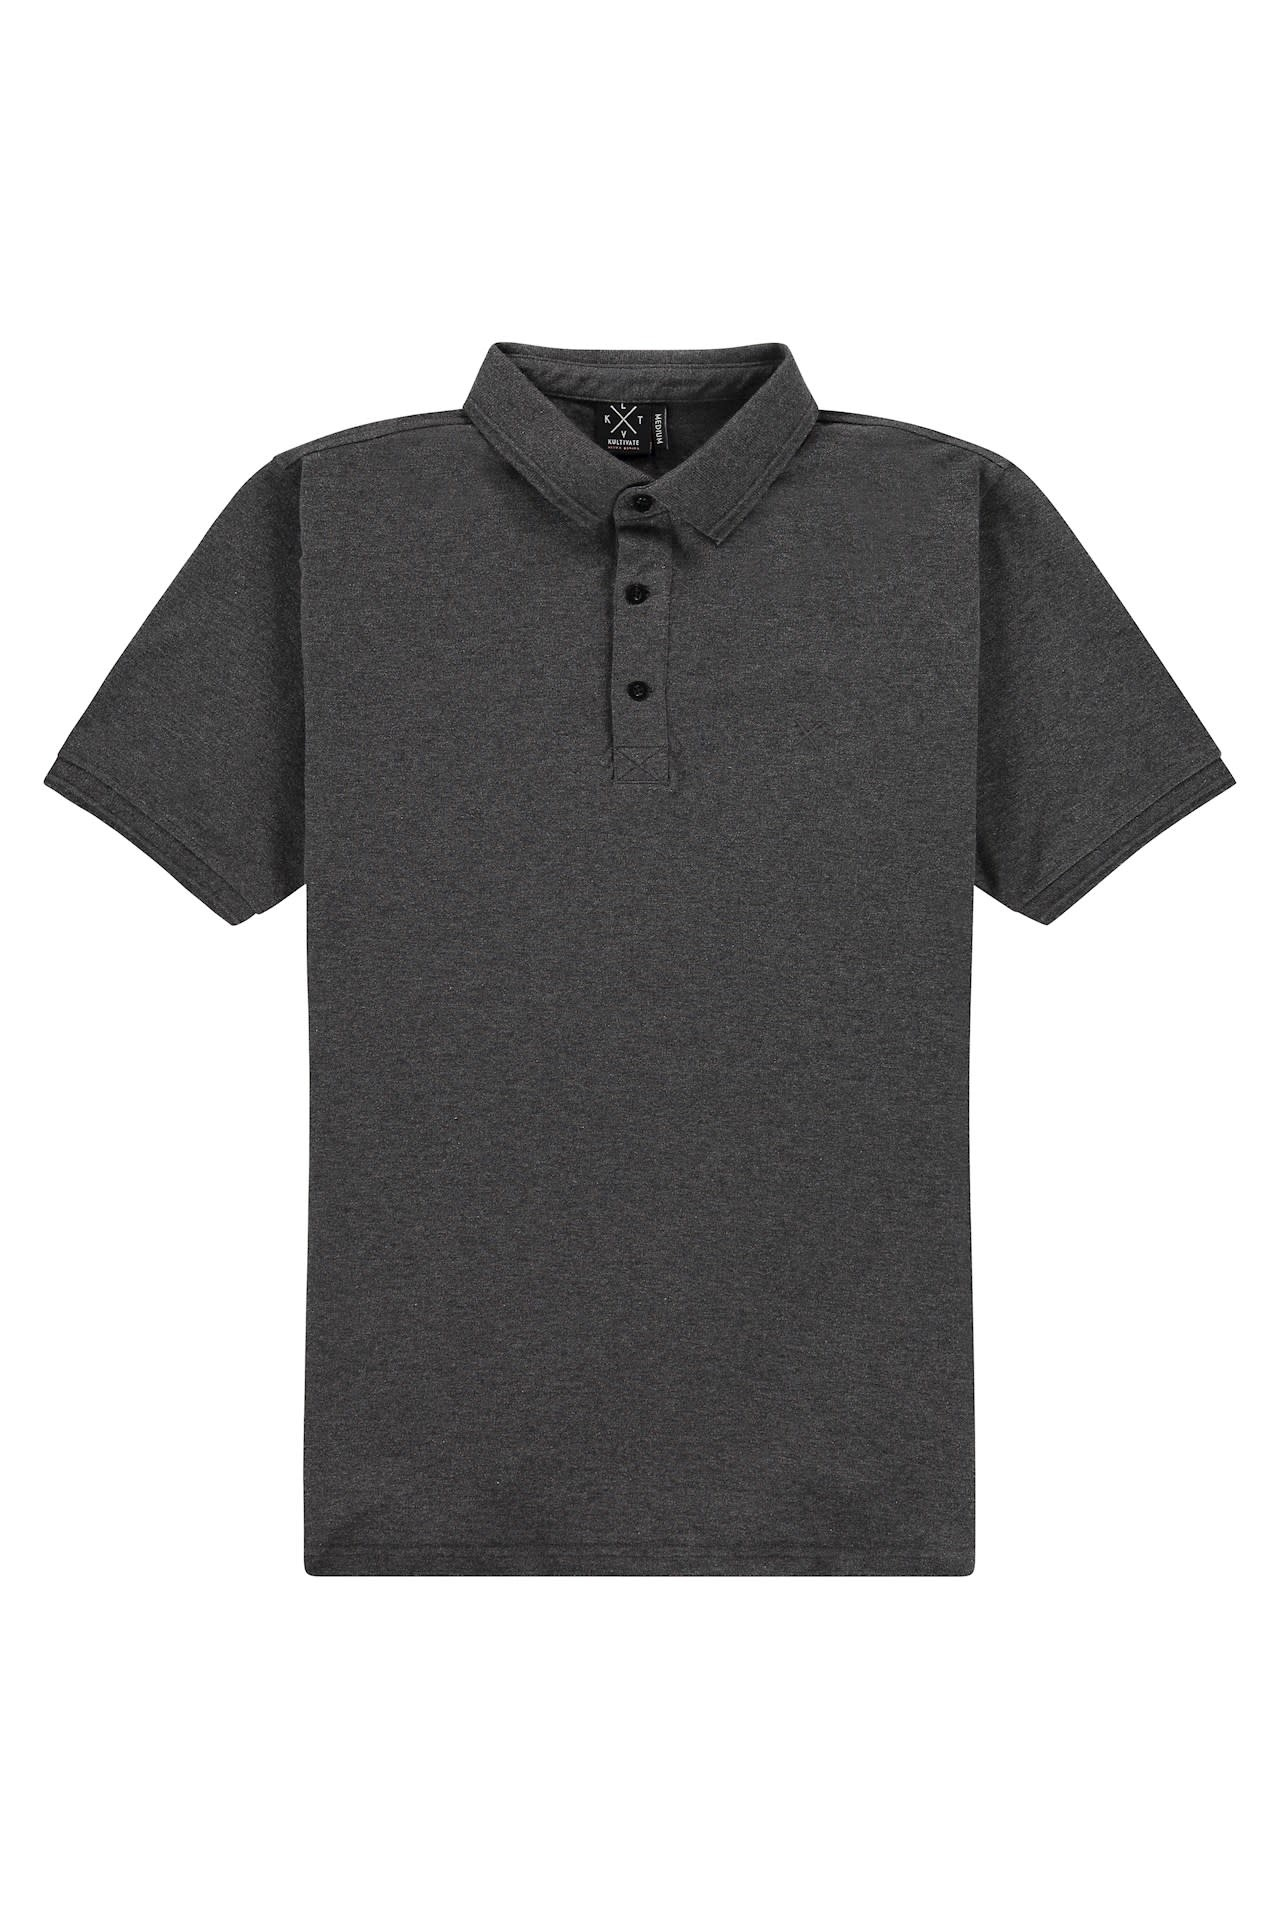 Kultivate Kultivate Keene Polo Dark Grey Melange